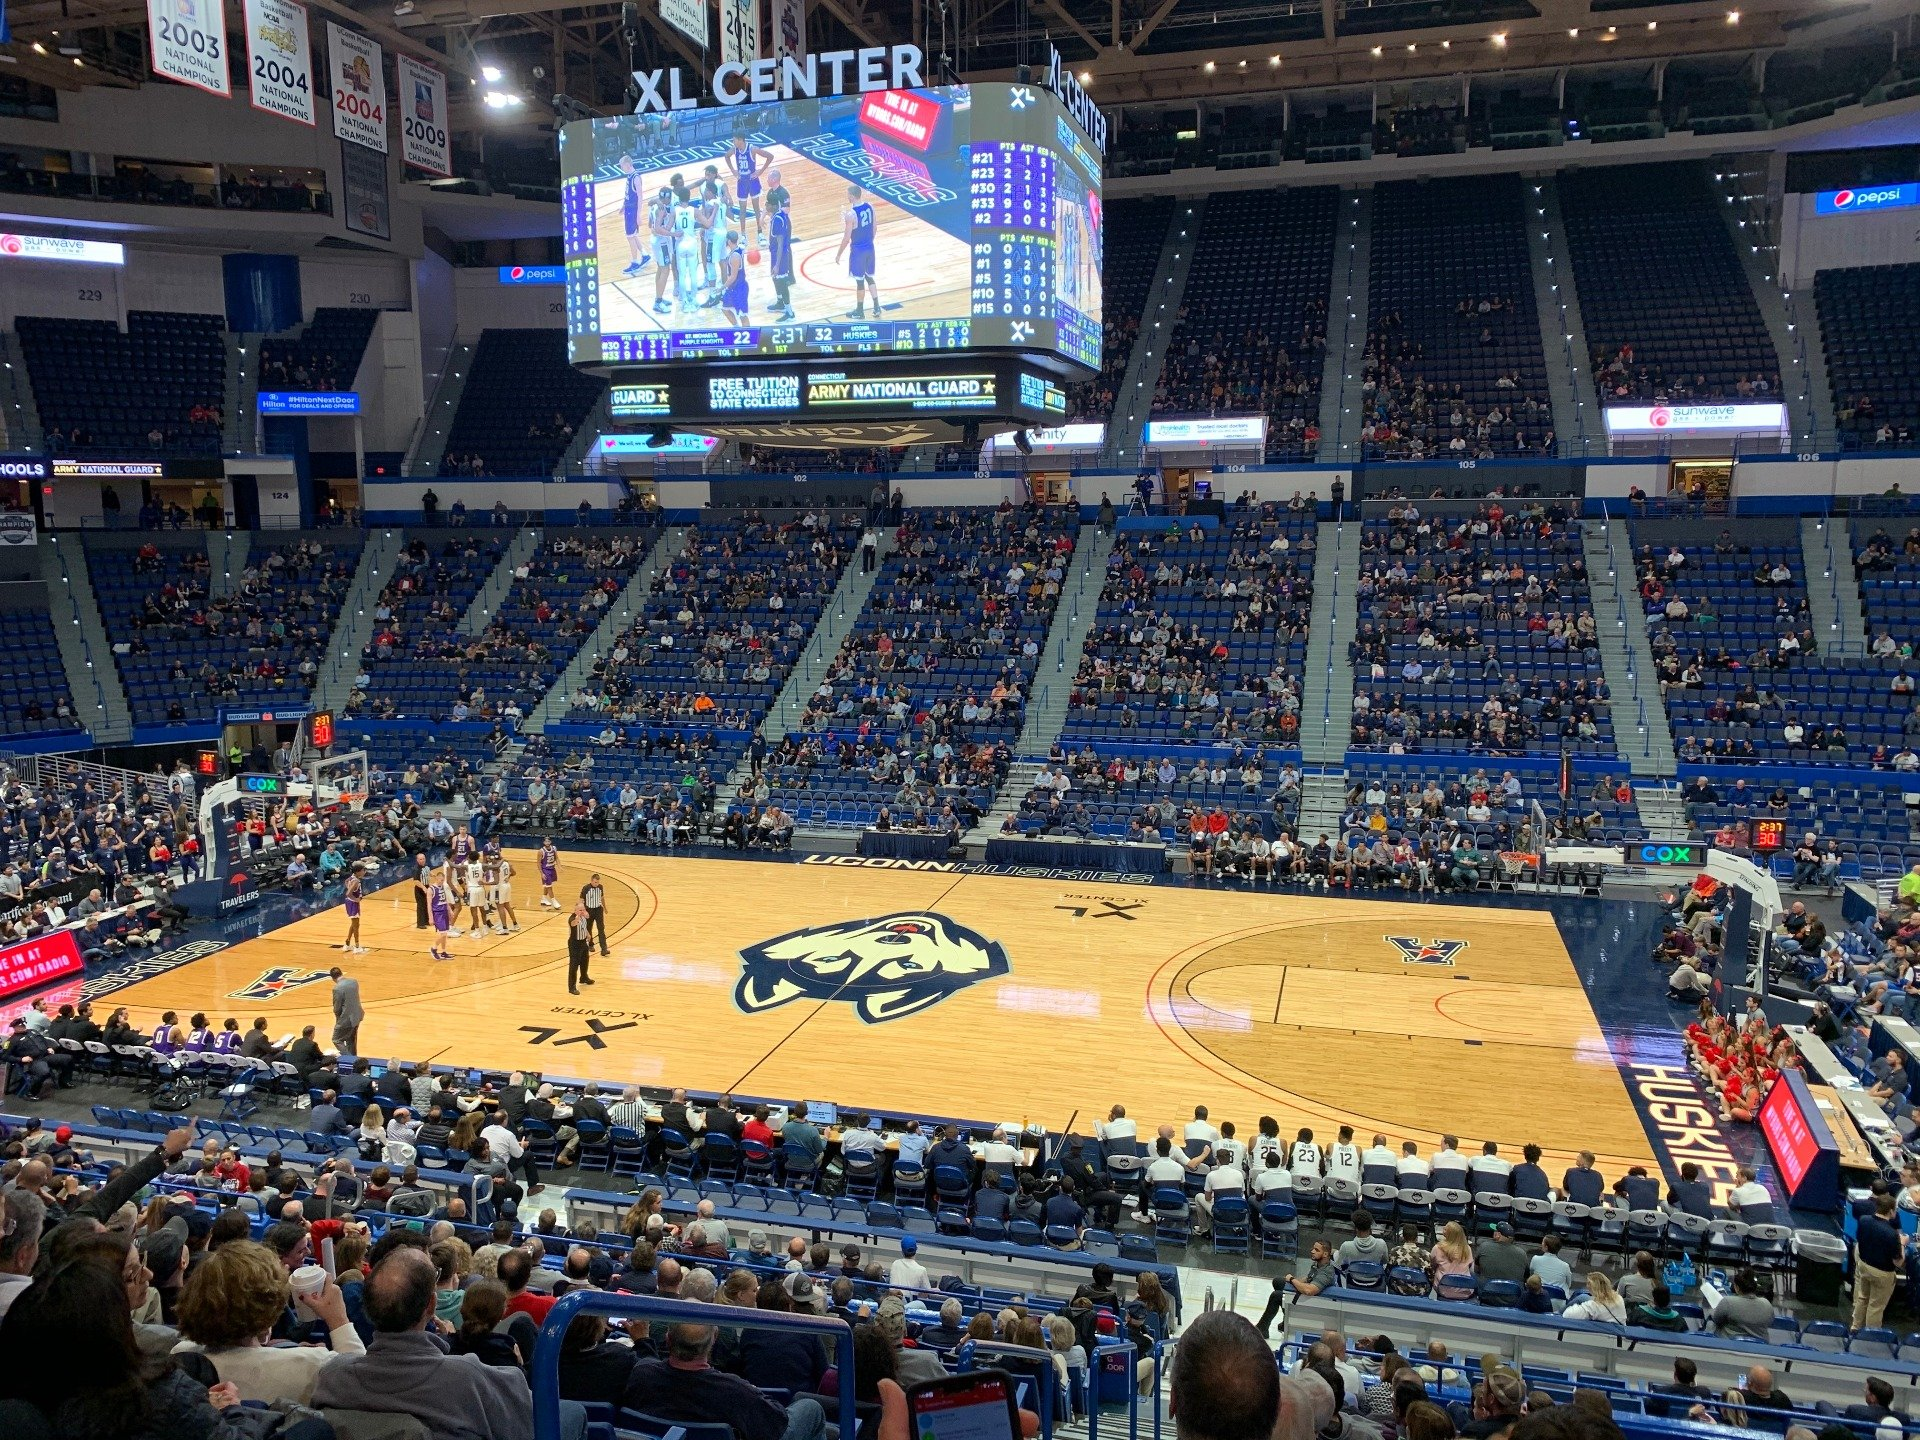 XL Center Section 114 Row X Seat 13